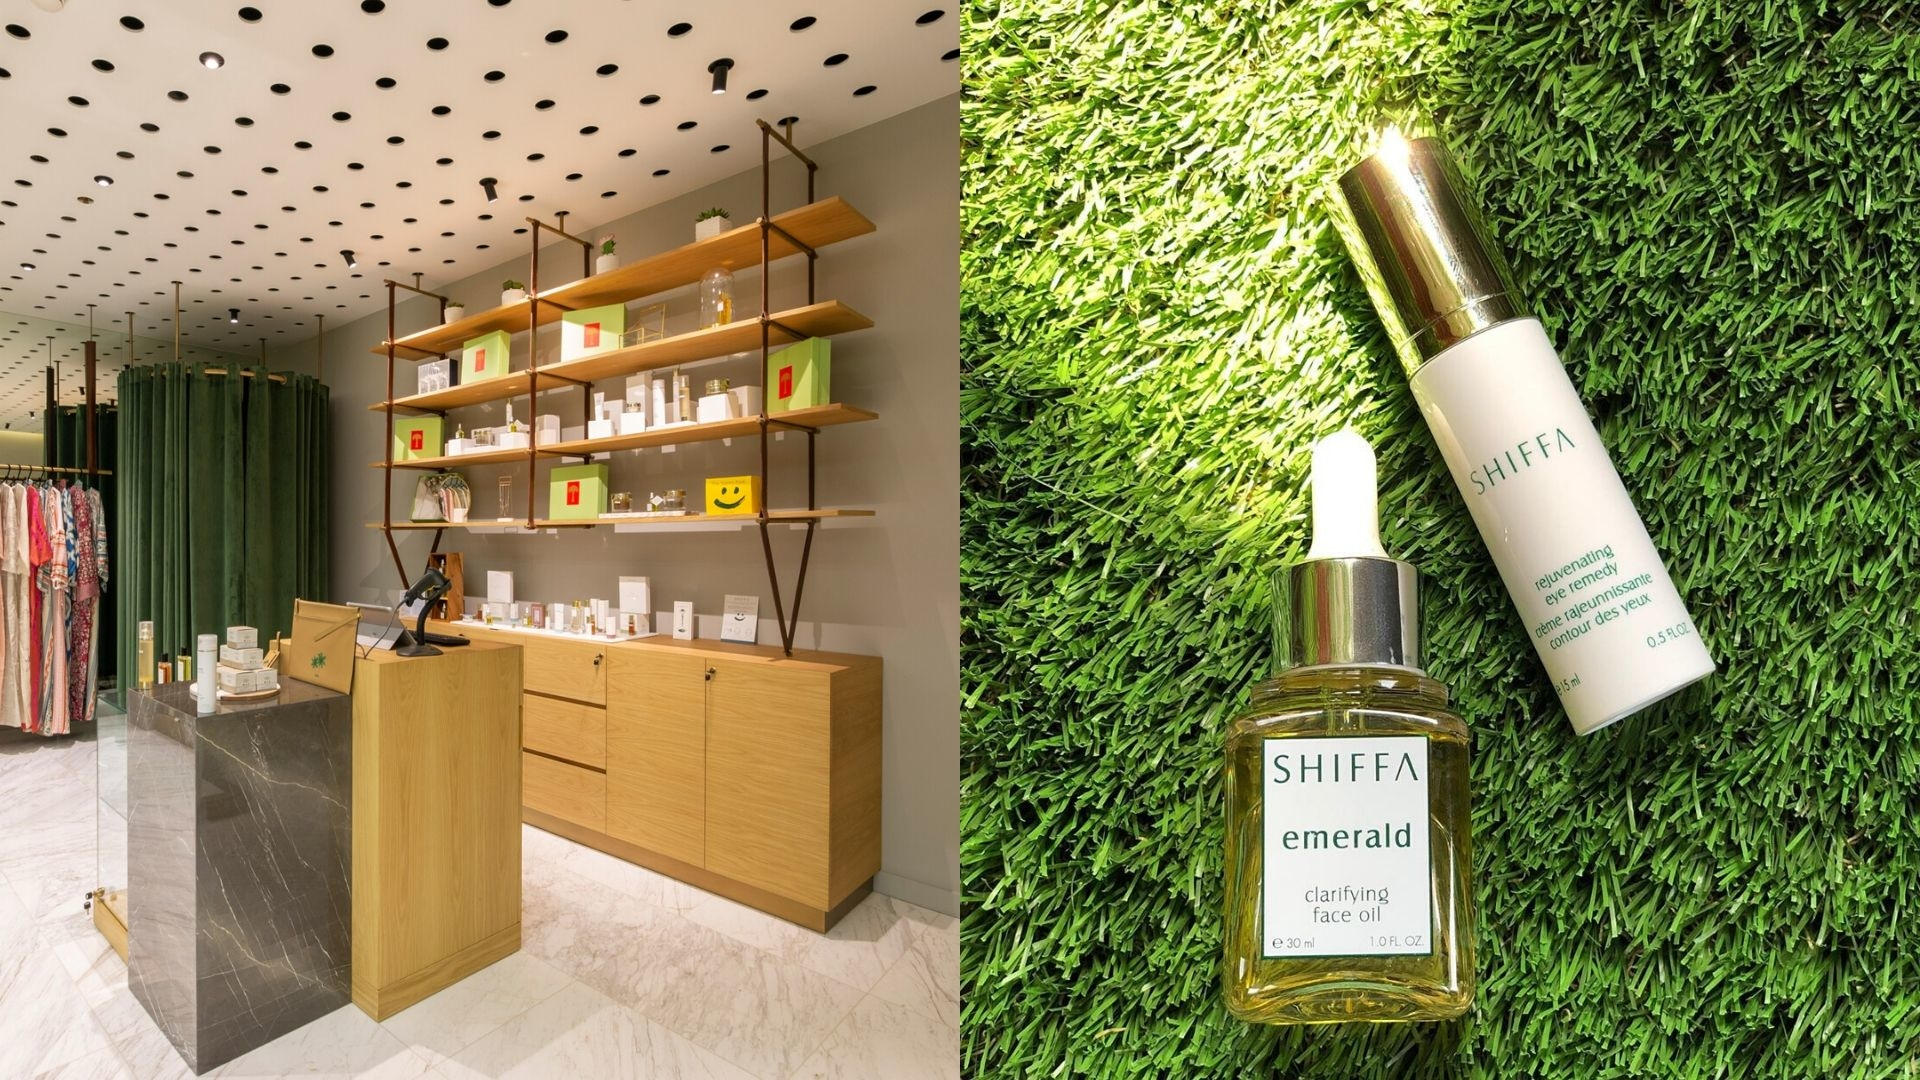 Shiffa Beauty Just Opened Their Brand New Pop-Up Store In Dubai